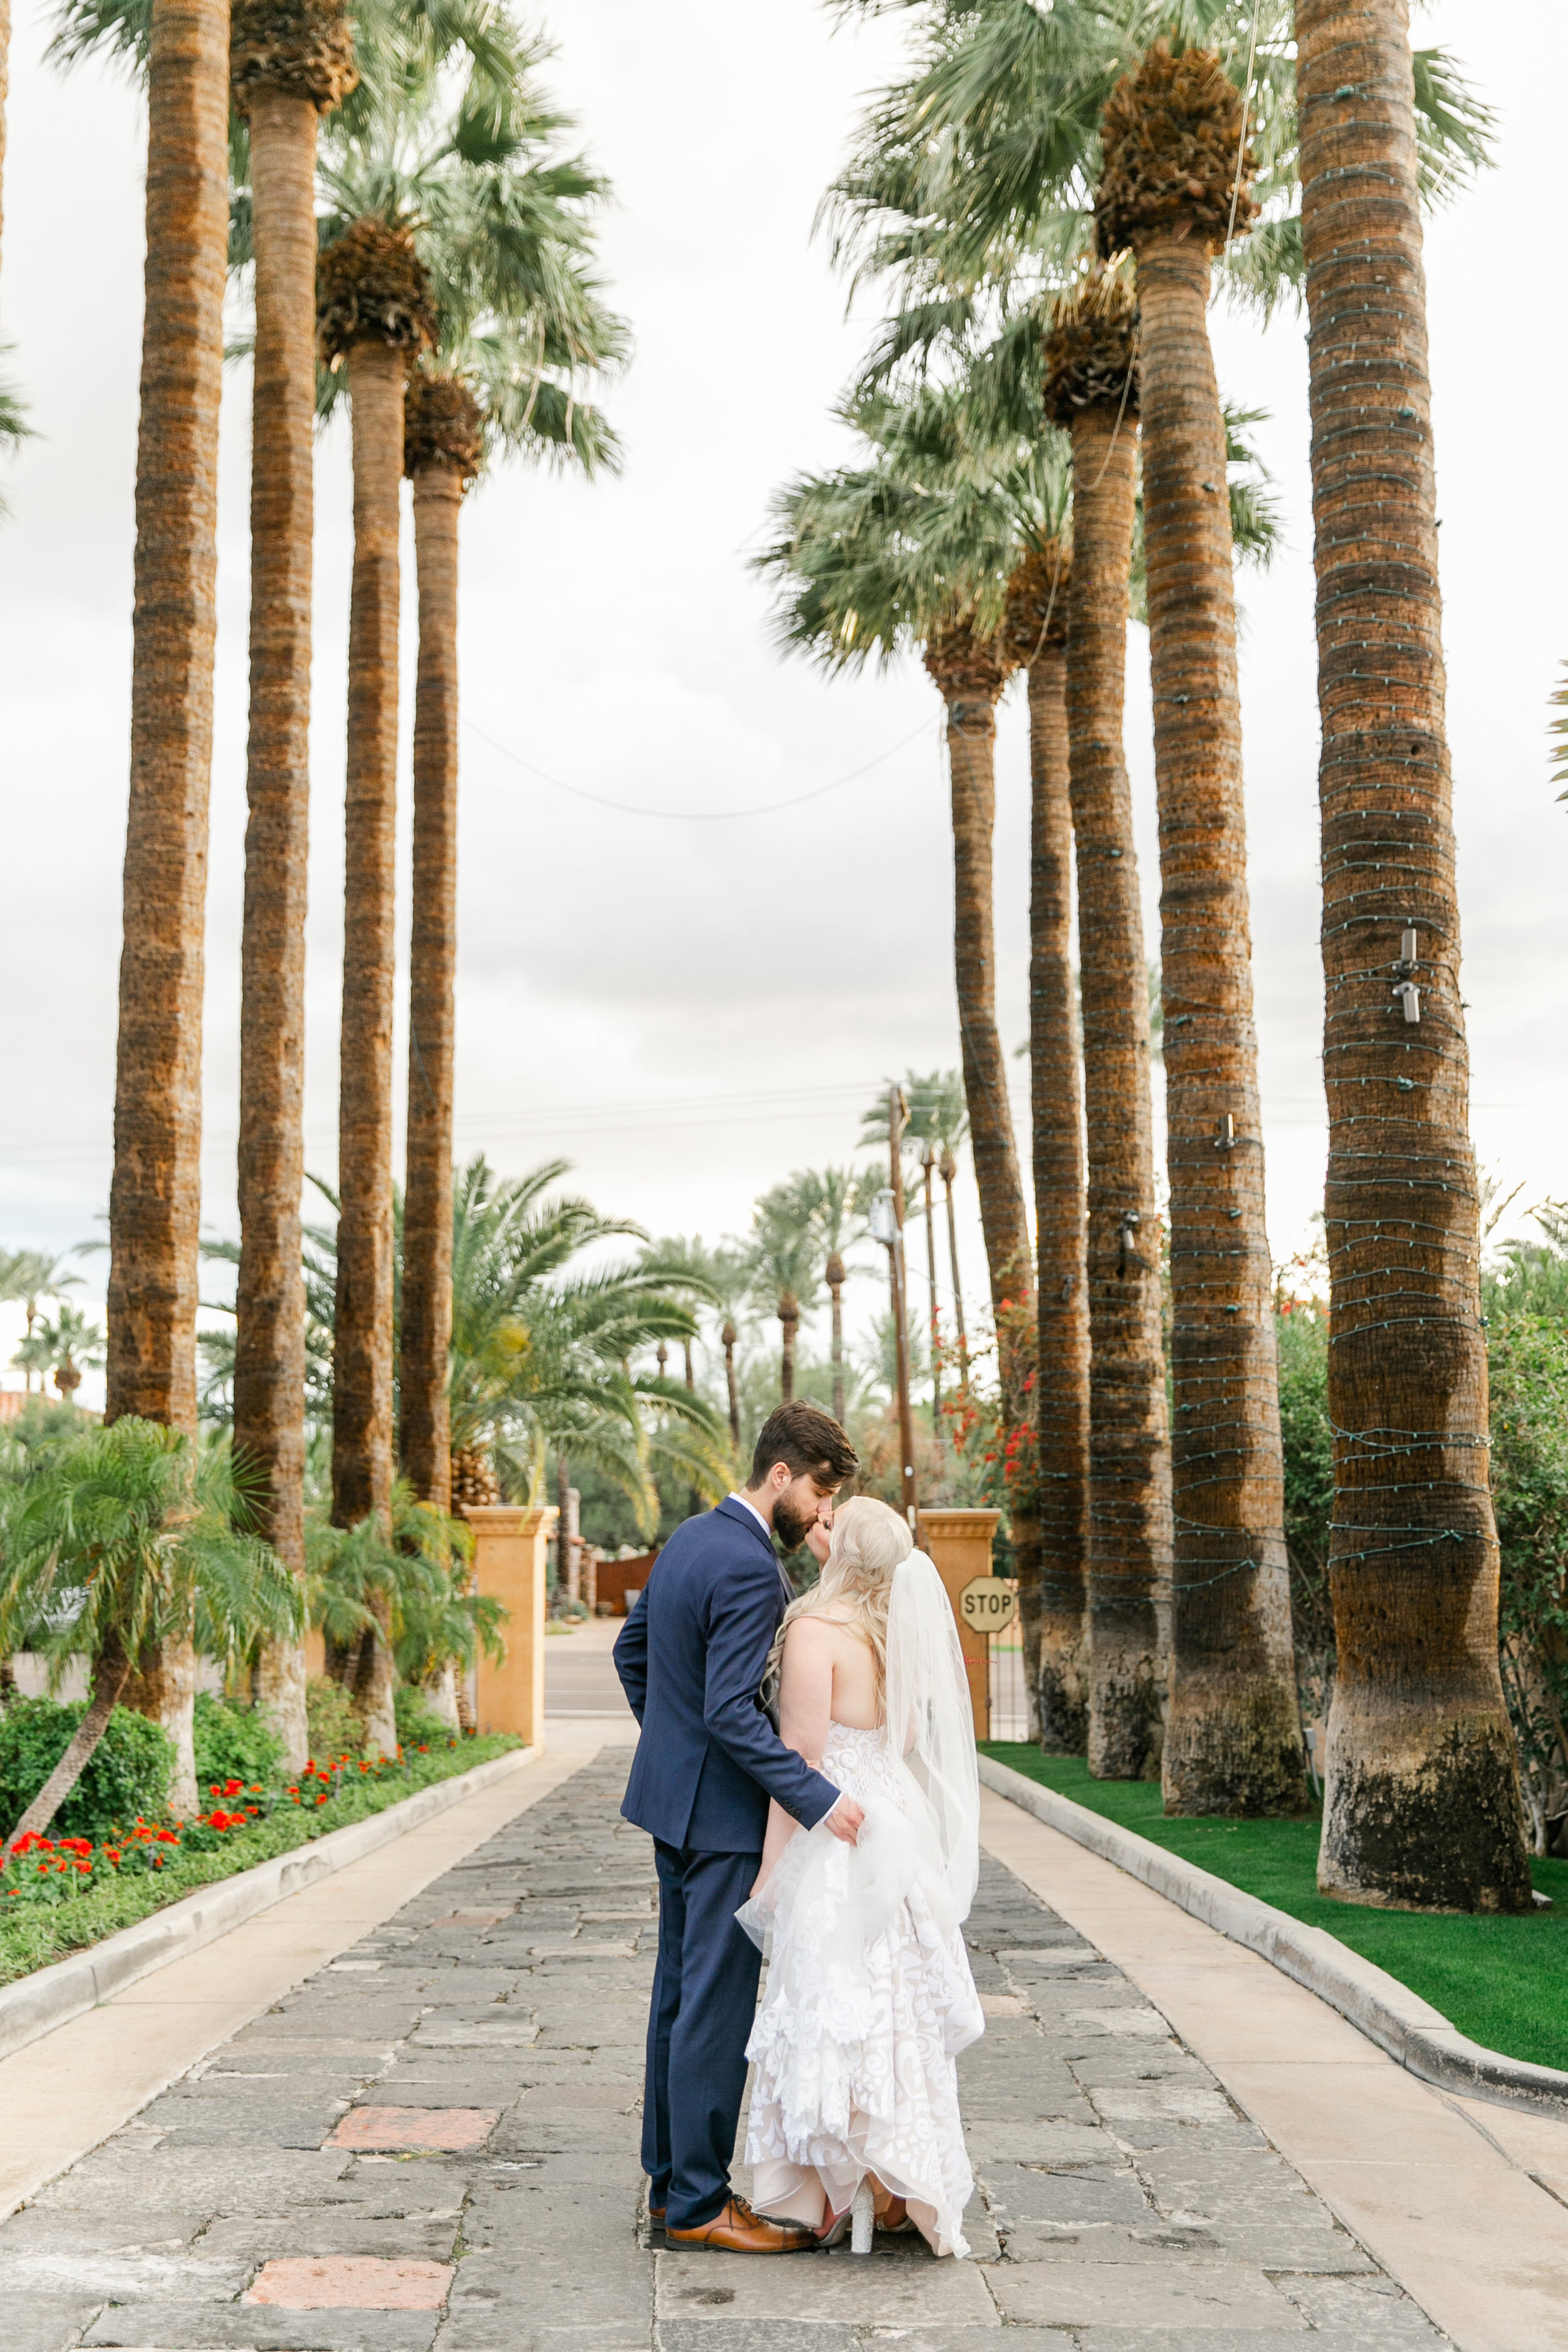 Karlie Colleen Photography - The Royal Palms Wedding - Some Like It Classic - Alex & Sam-573